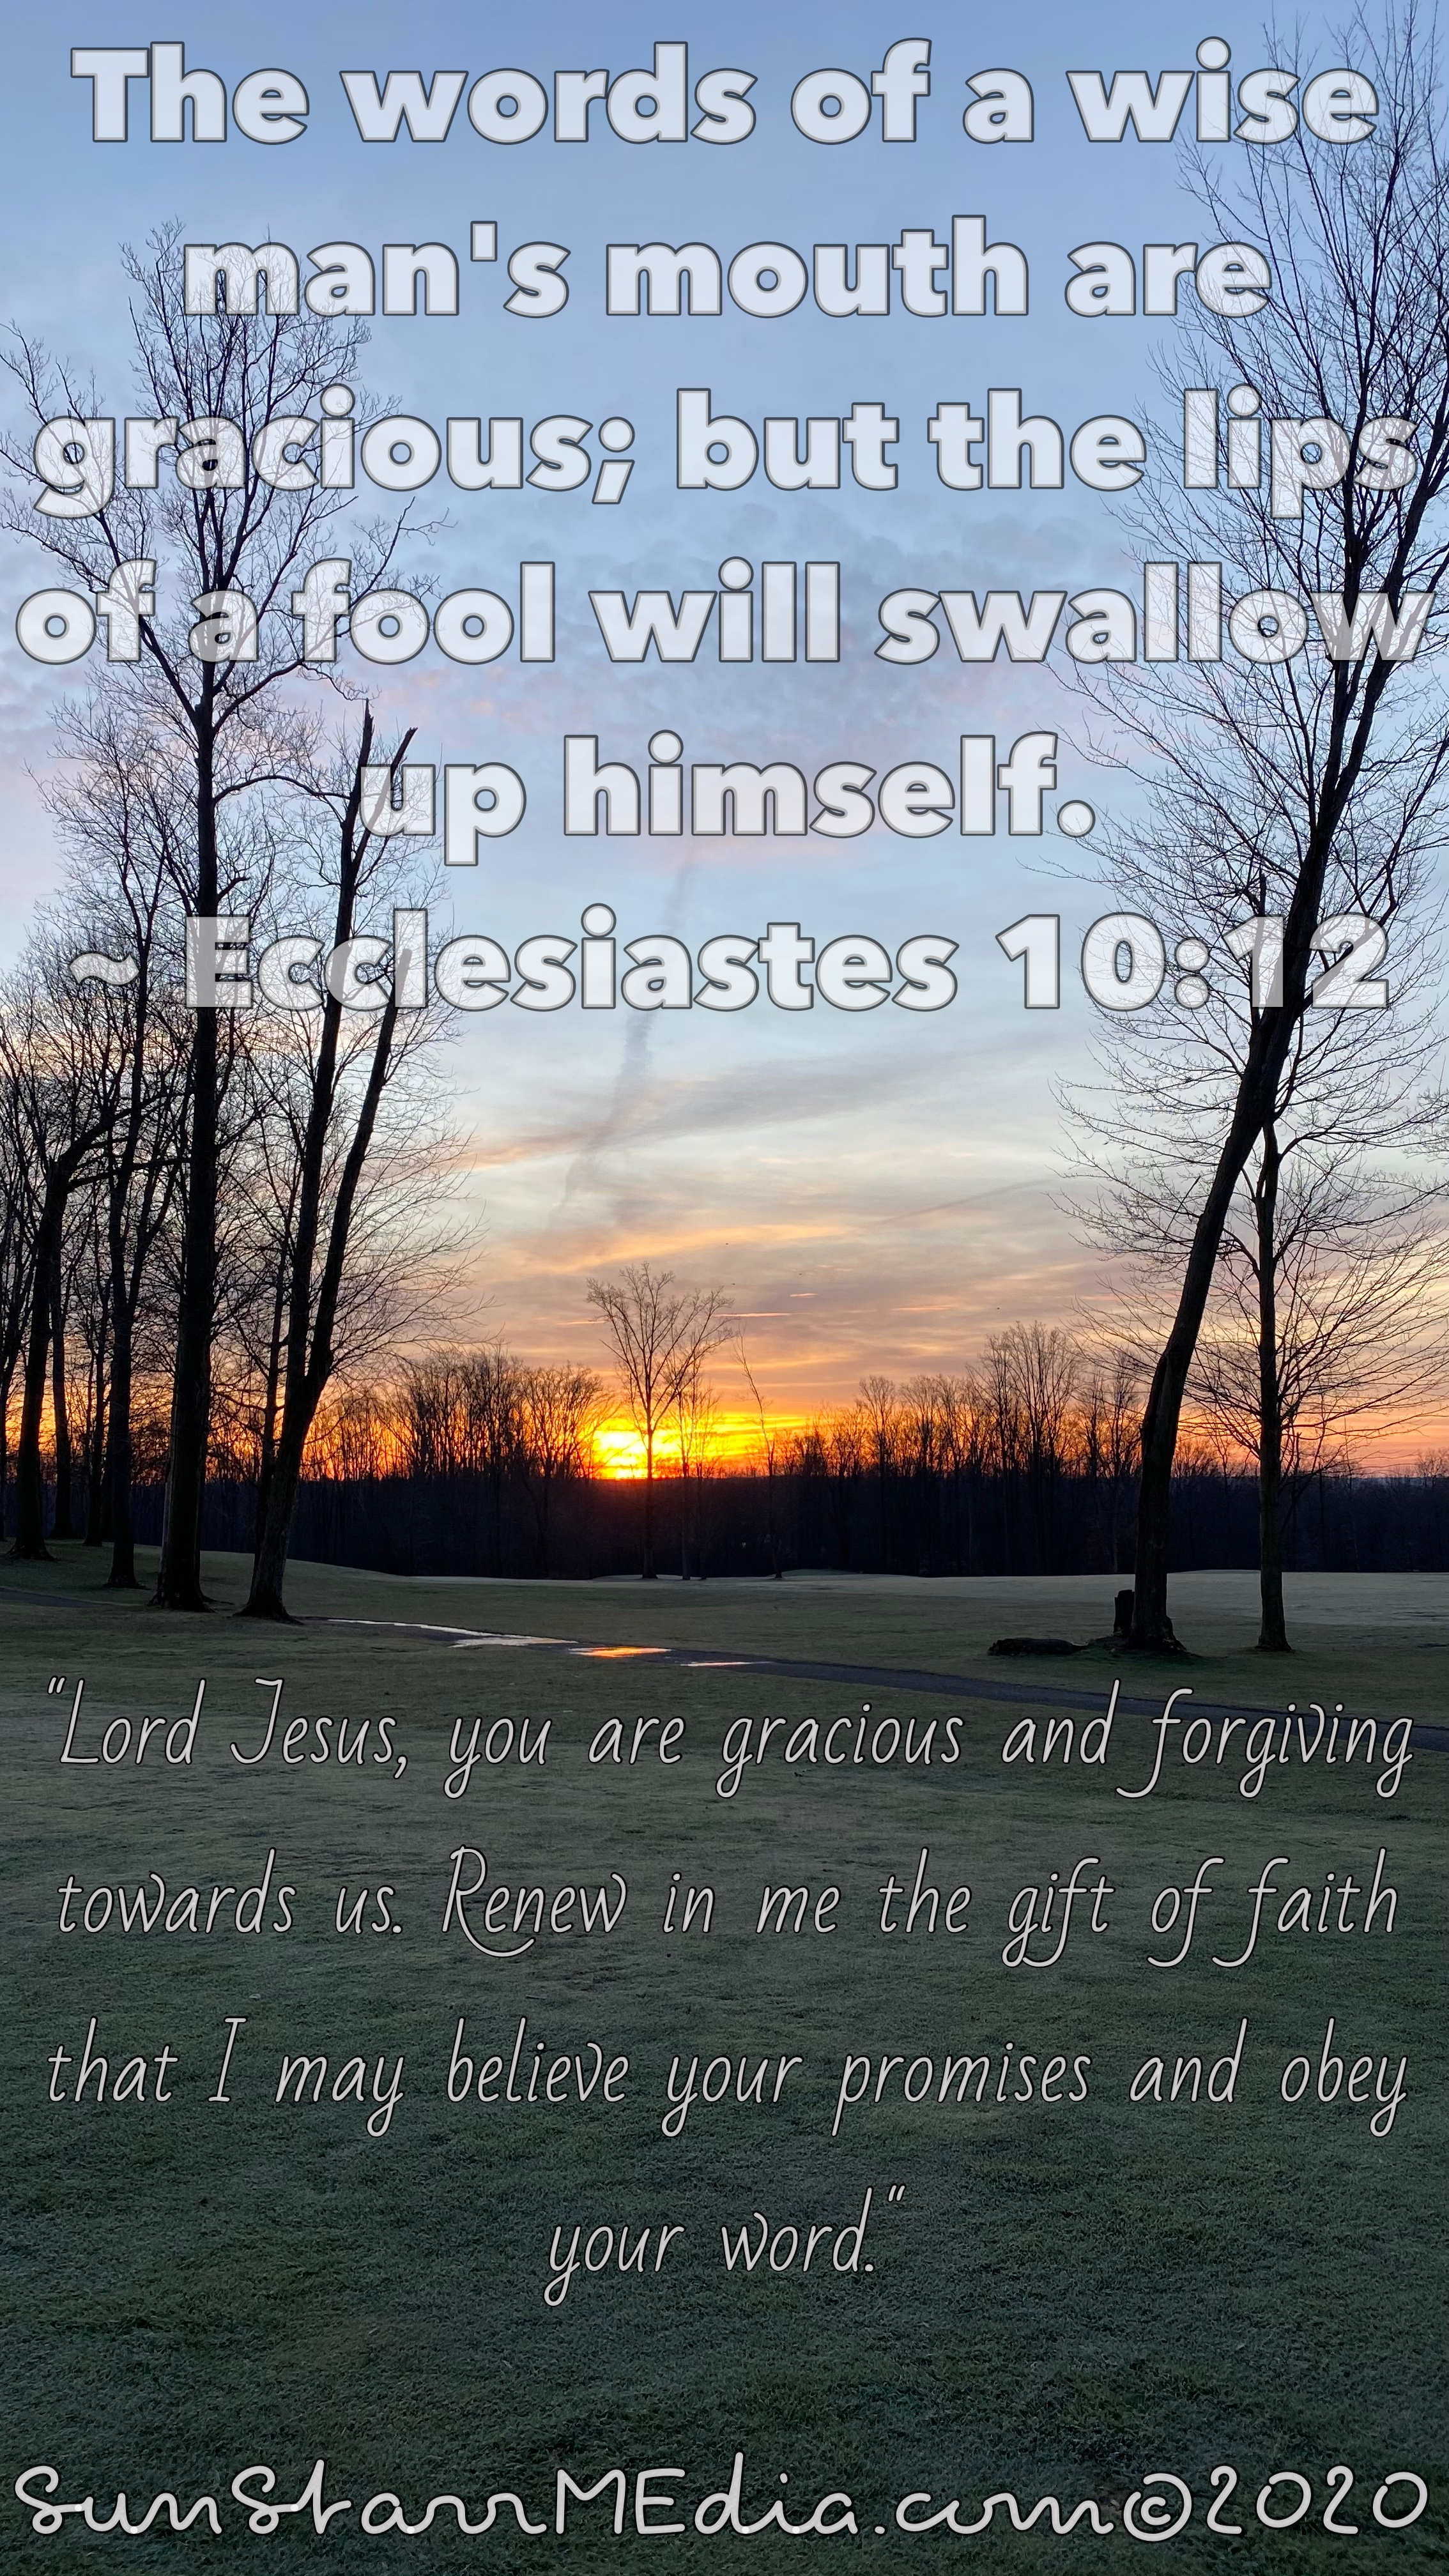 """""""Lord Jesus, you are gracious and forgiving towards us. Renew in me the gift of faith that I may believe your promises and obey your word."""""""